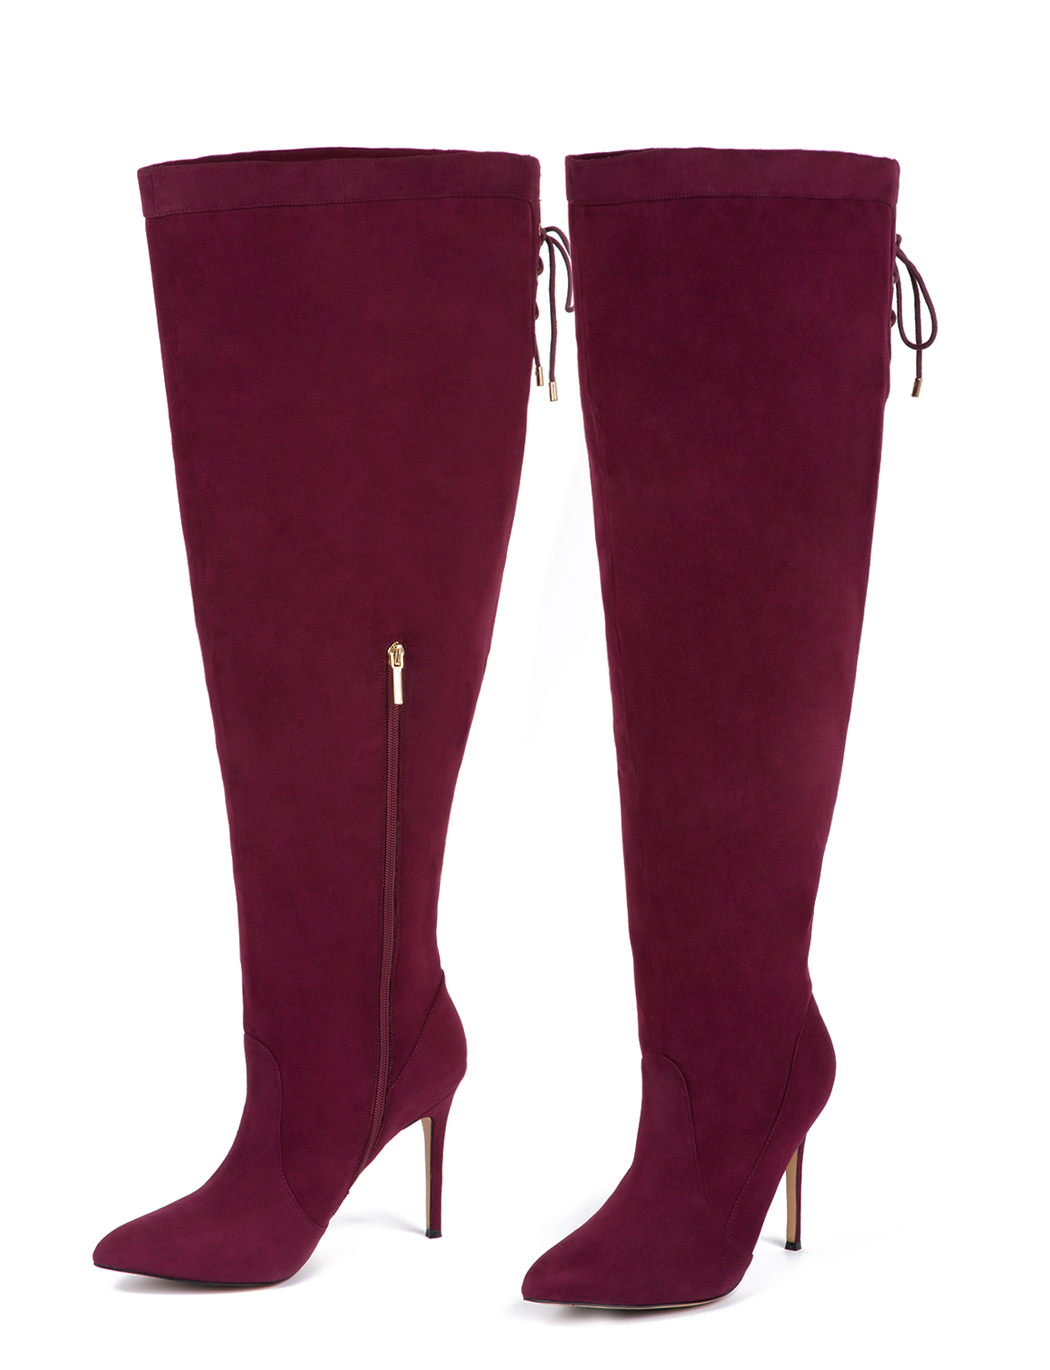 Stylish Wide Calf Boots